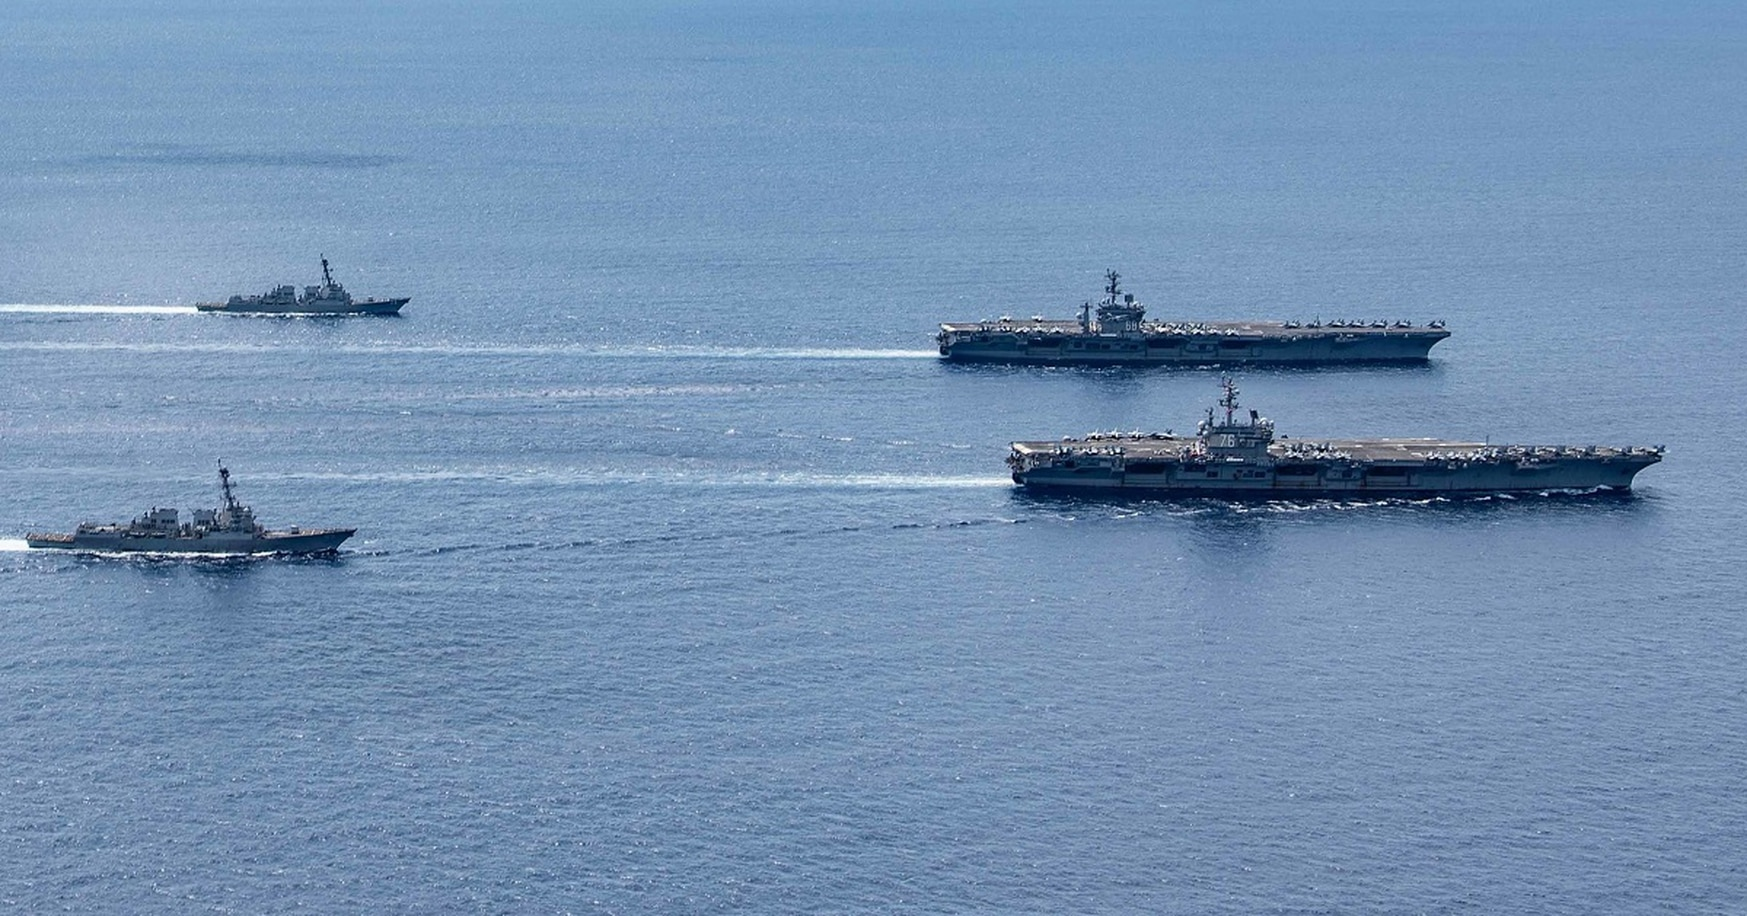 The carriers Ronald Reagan and Nimitz carrier strike groups steam in formation. (MC3 Jason Tarleton/U.S. Navy)